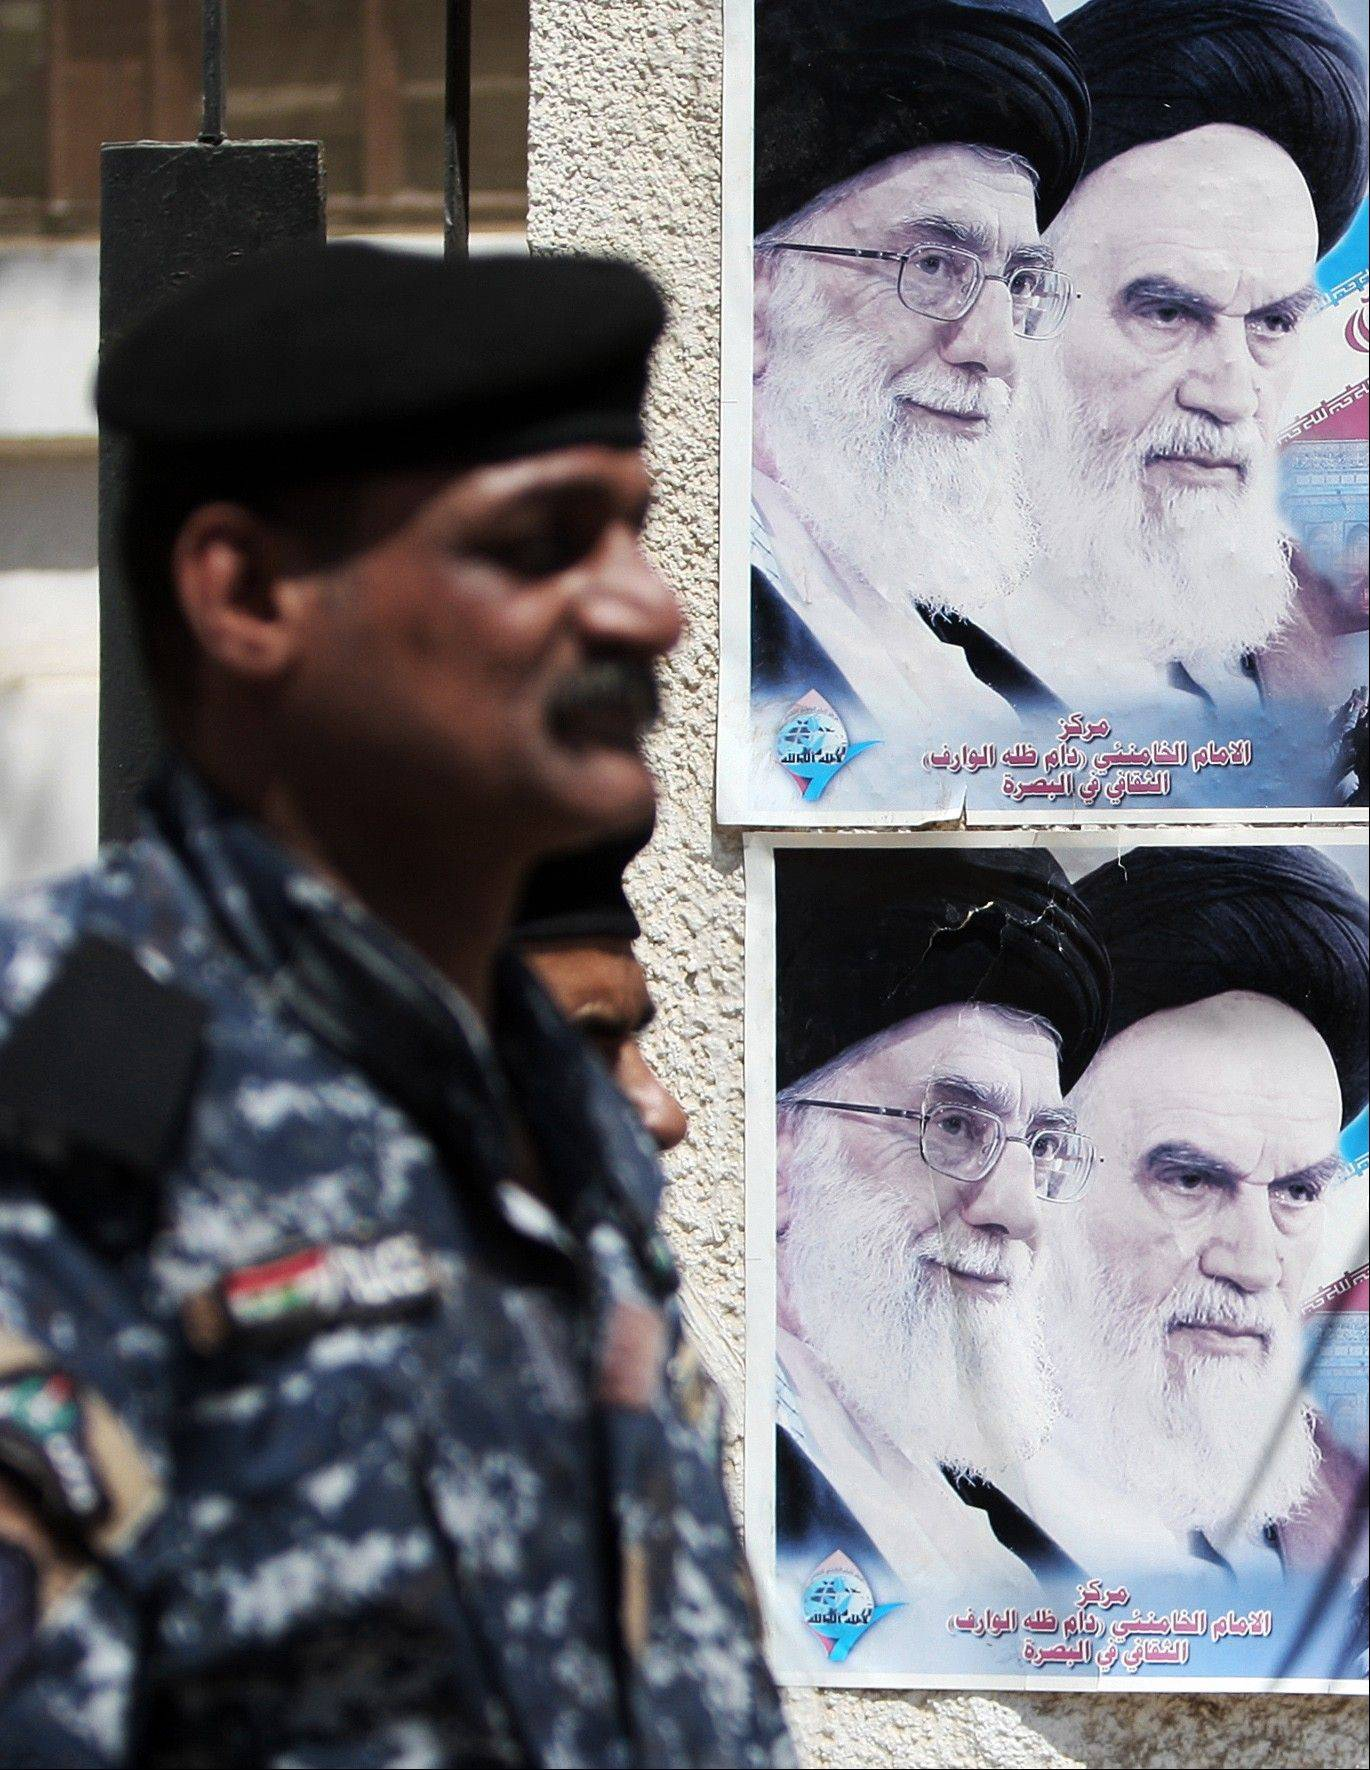 An Iraqi soldier stands guard next to a poster depicting late Iran�s spiritual leaders Ayatollah Khomeini, right, and Ayatollah Khamenei, left, in Basra, 340 miles southeast of Baghdad, Iraq.